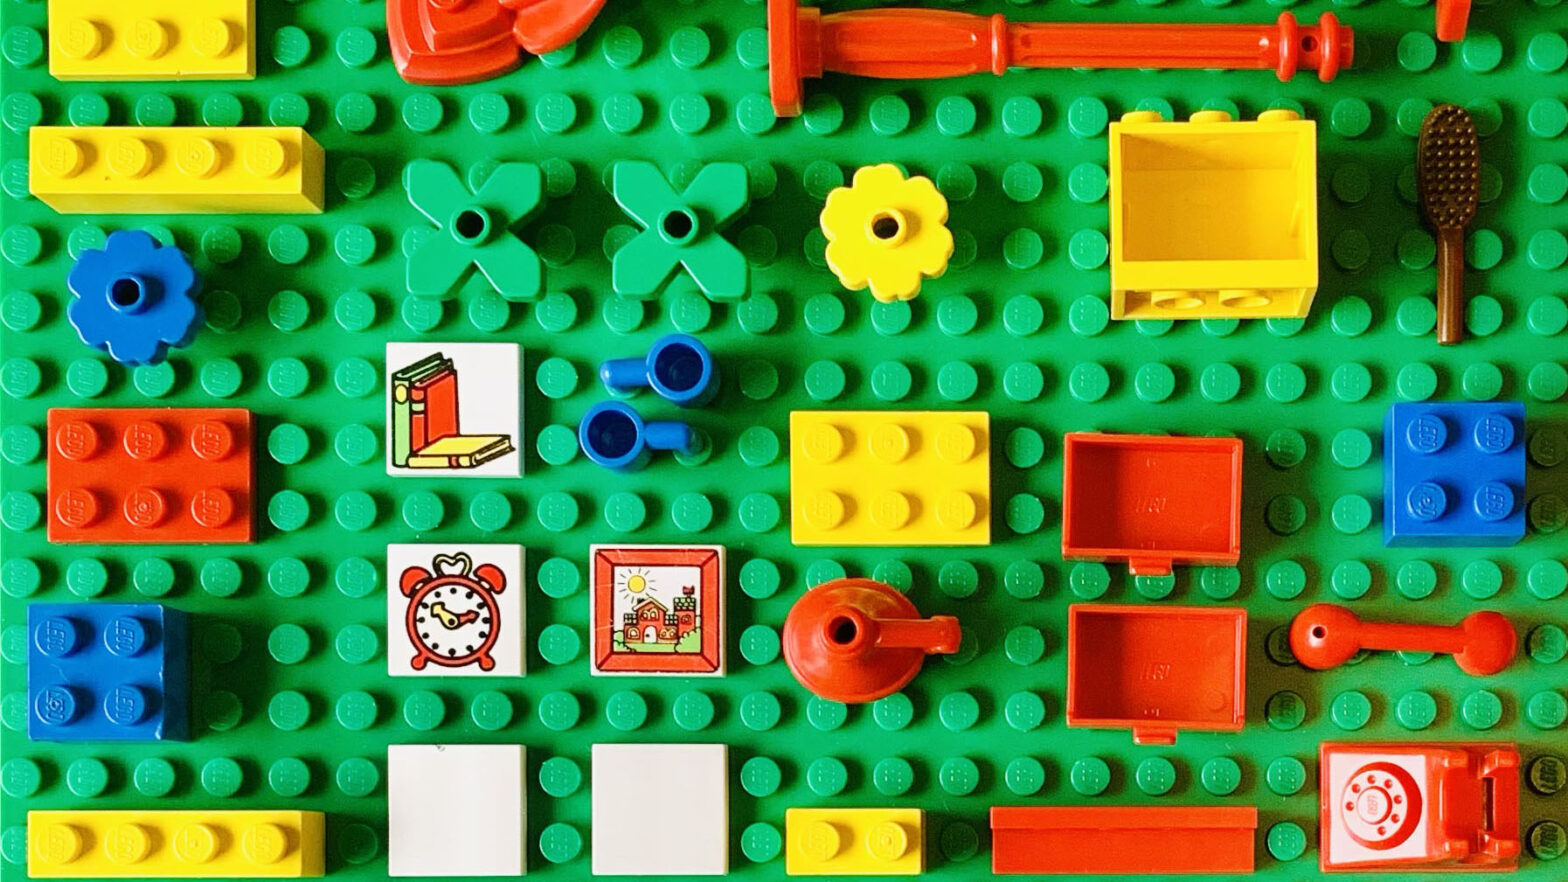 Colourful LEGO elements laid out neatly.